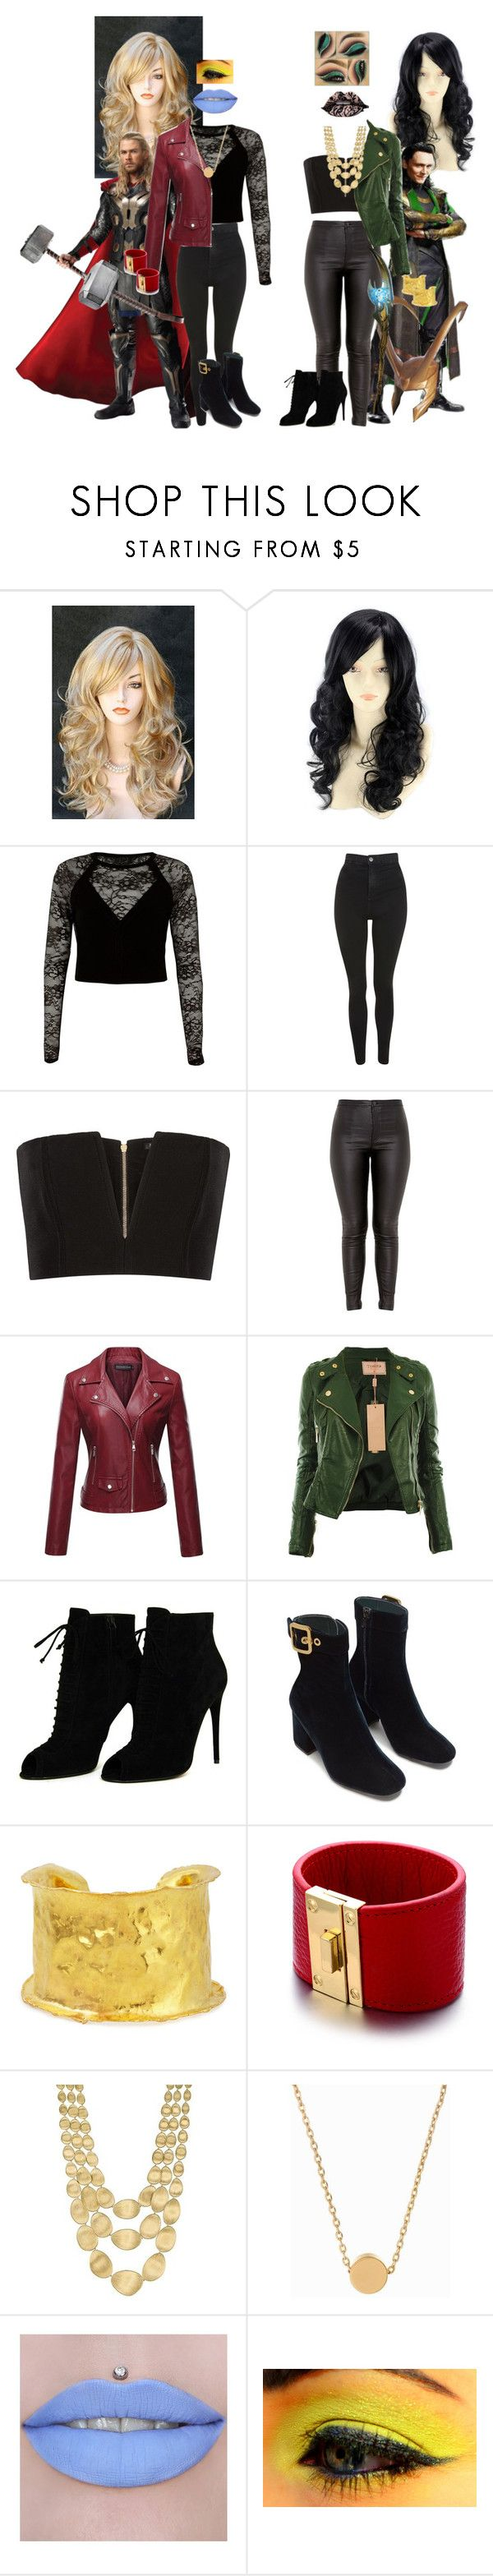 """""""Thor and Loki"""" by batgirl-at-the-walking-dead3 ❤ liked on Polyvore featuring WithChic, Marvel, River Island, Topshop, Balmain, Tom Ford, Jean Mahie, Alberto Moore, Marco Bicego and Minnie Grace"""